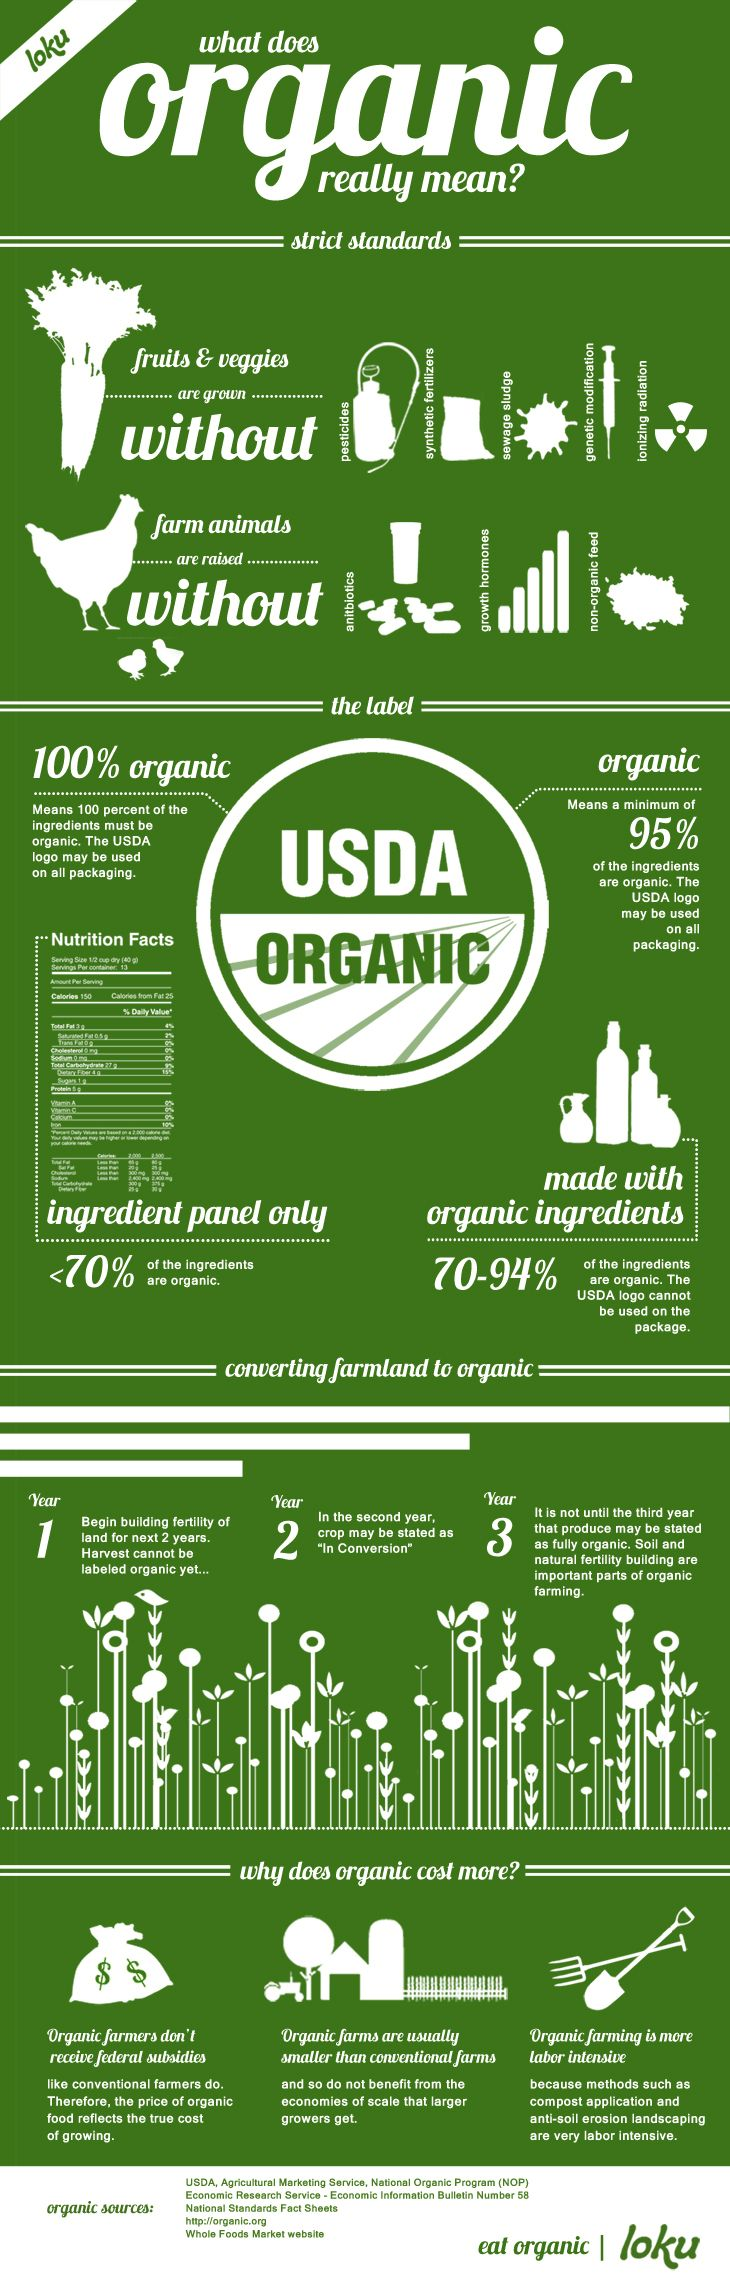 Raise your hand if you really know what organic exactly means. In the last decades we have been hearing a lot about organic fruits, veggies and meats